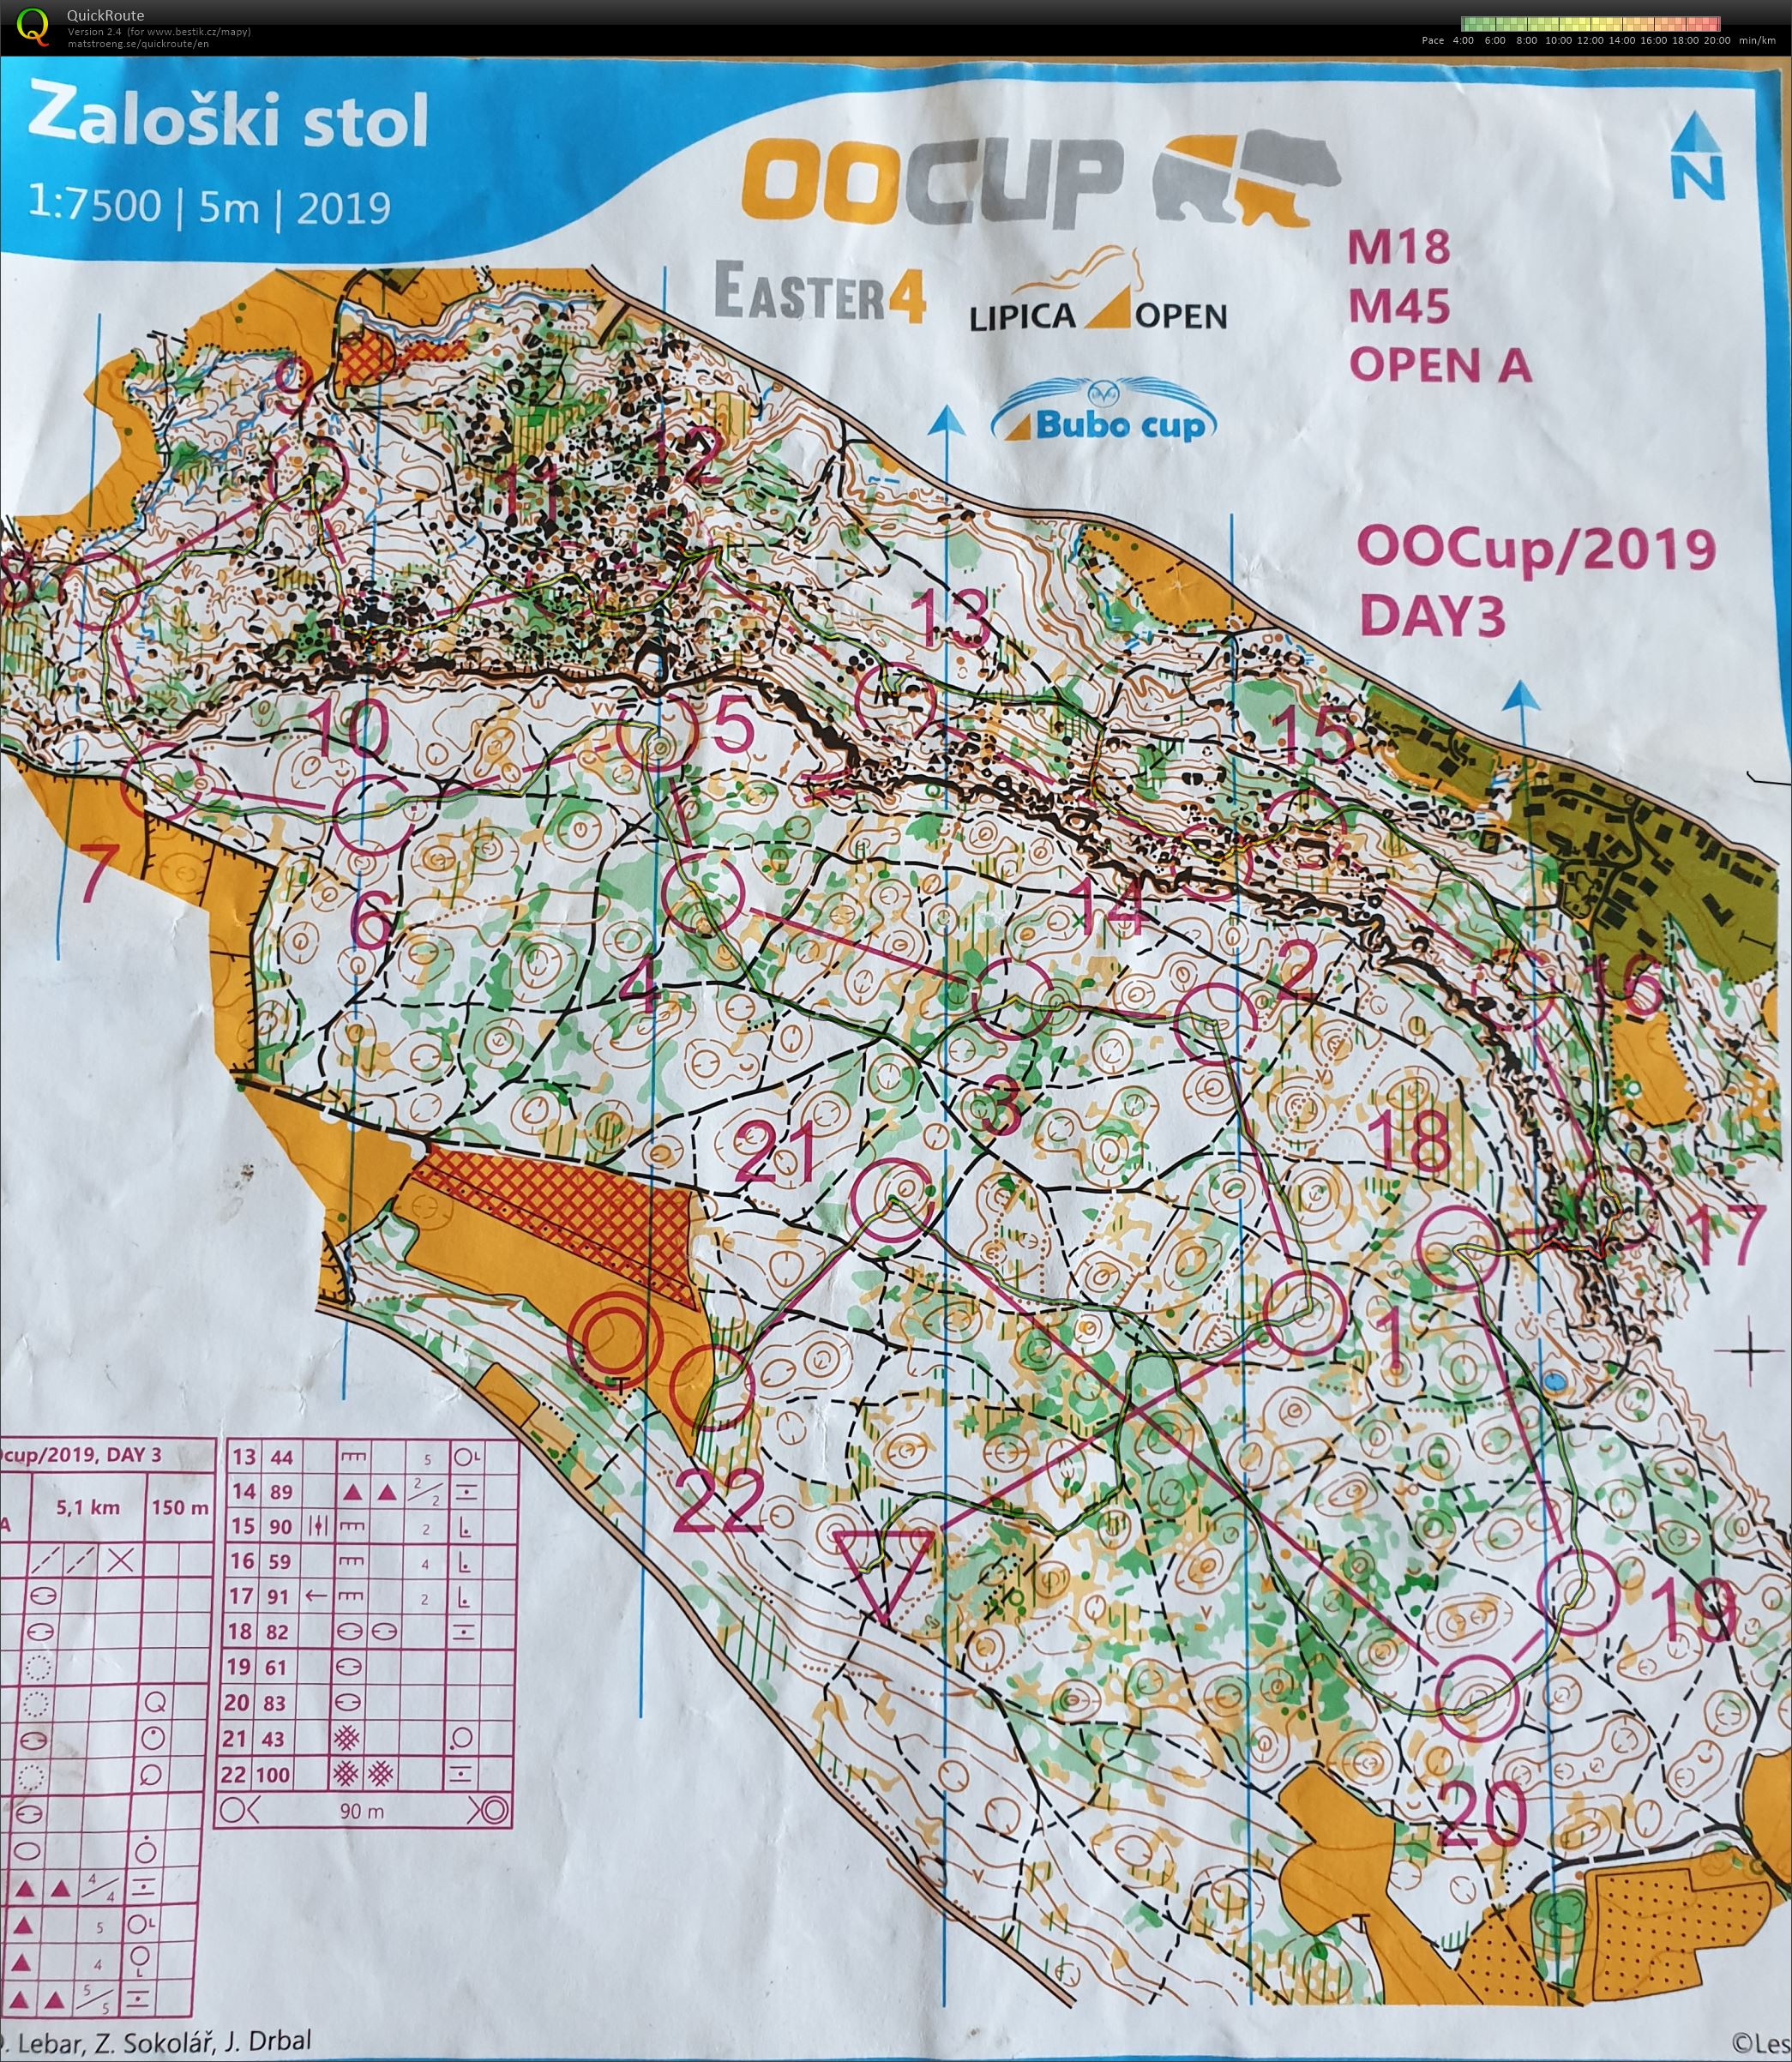 OOcup 2019 - E3 - H45 - middle (26.07.2019)